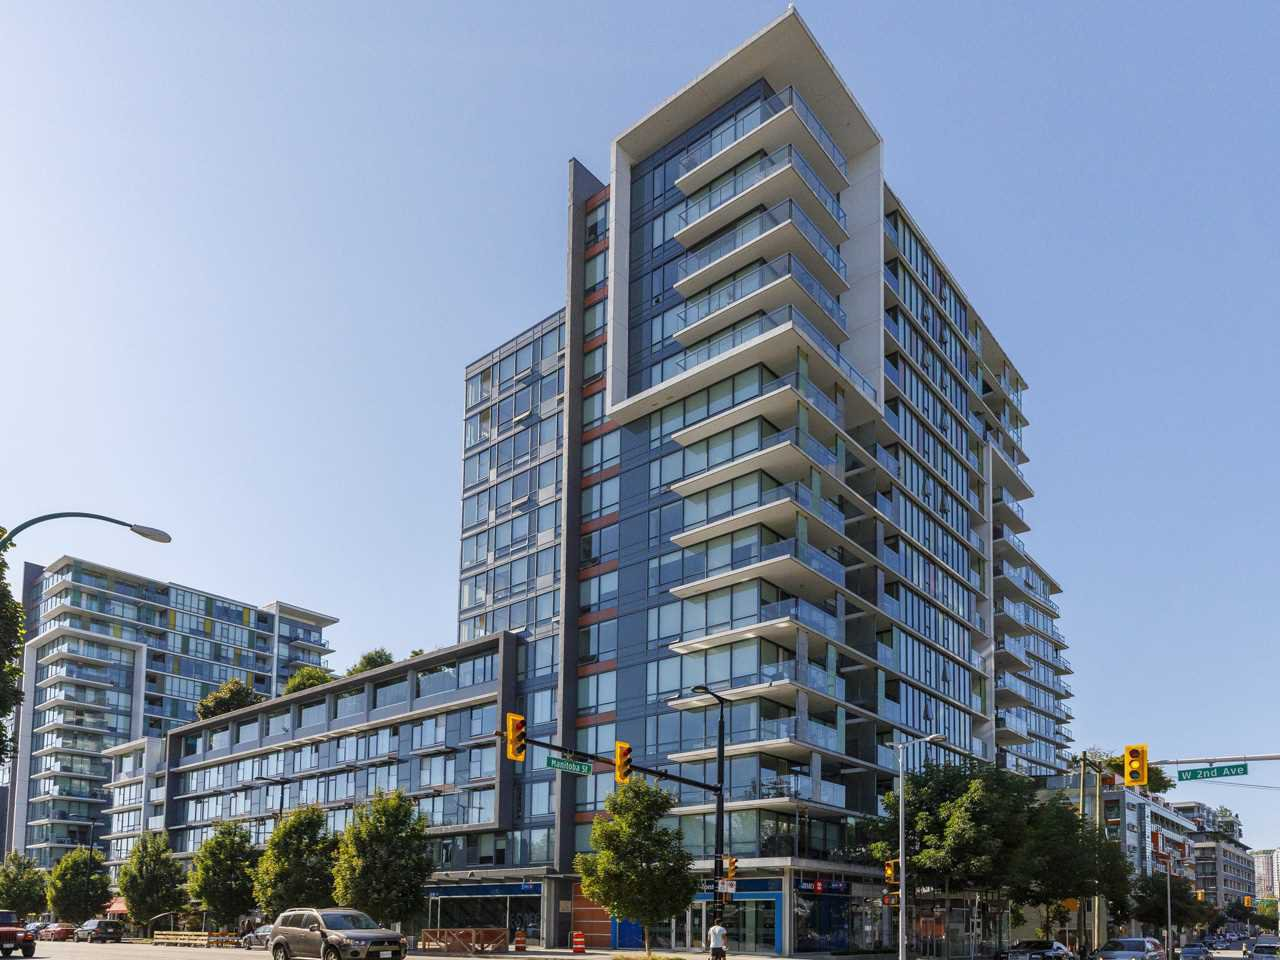 "Main Photo: 631 1783 MANITOBA Street in Vancouver: False Creek Condo for sale in ""Residences at West"" (Vancouver West)  : MLS®# R2478331"